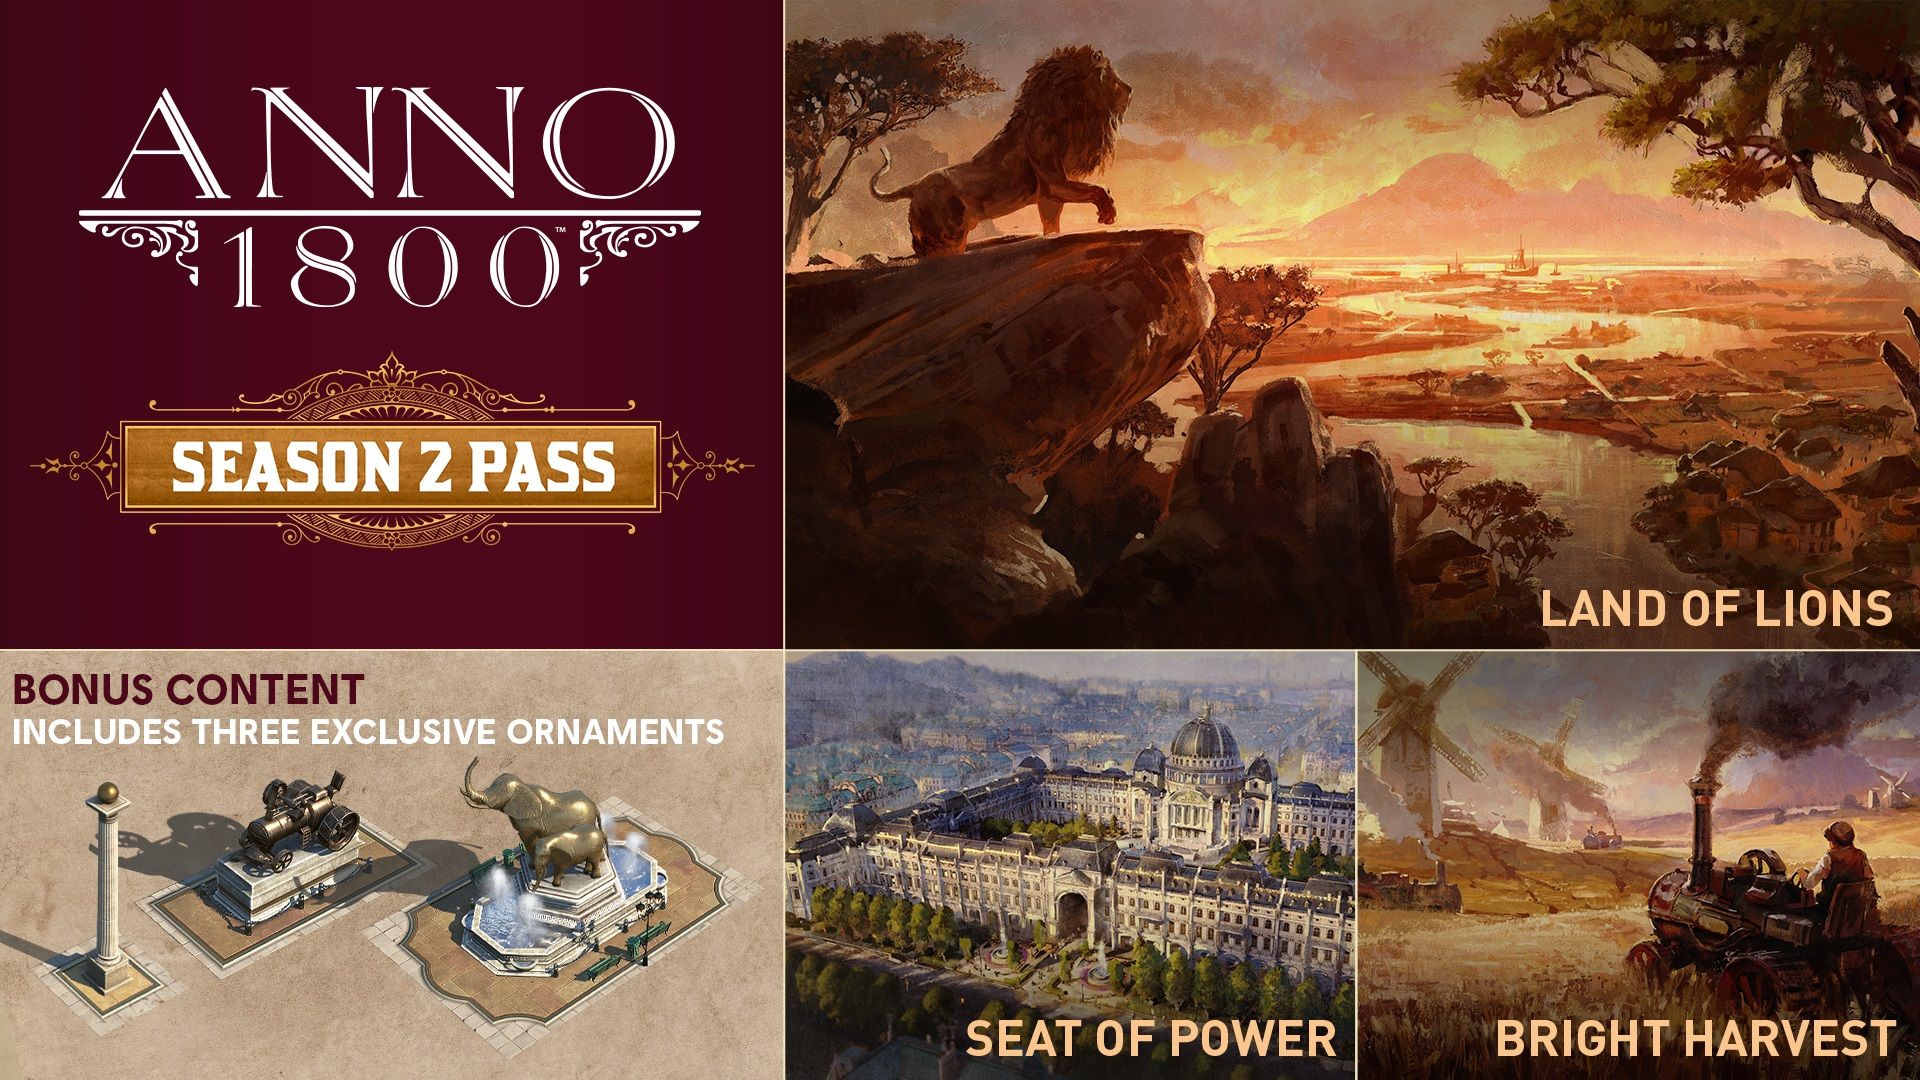 Announcing the Anno 1800 Season 2 Pass